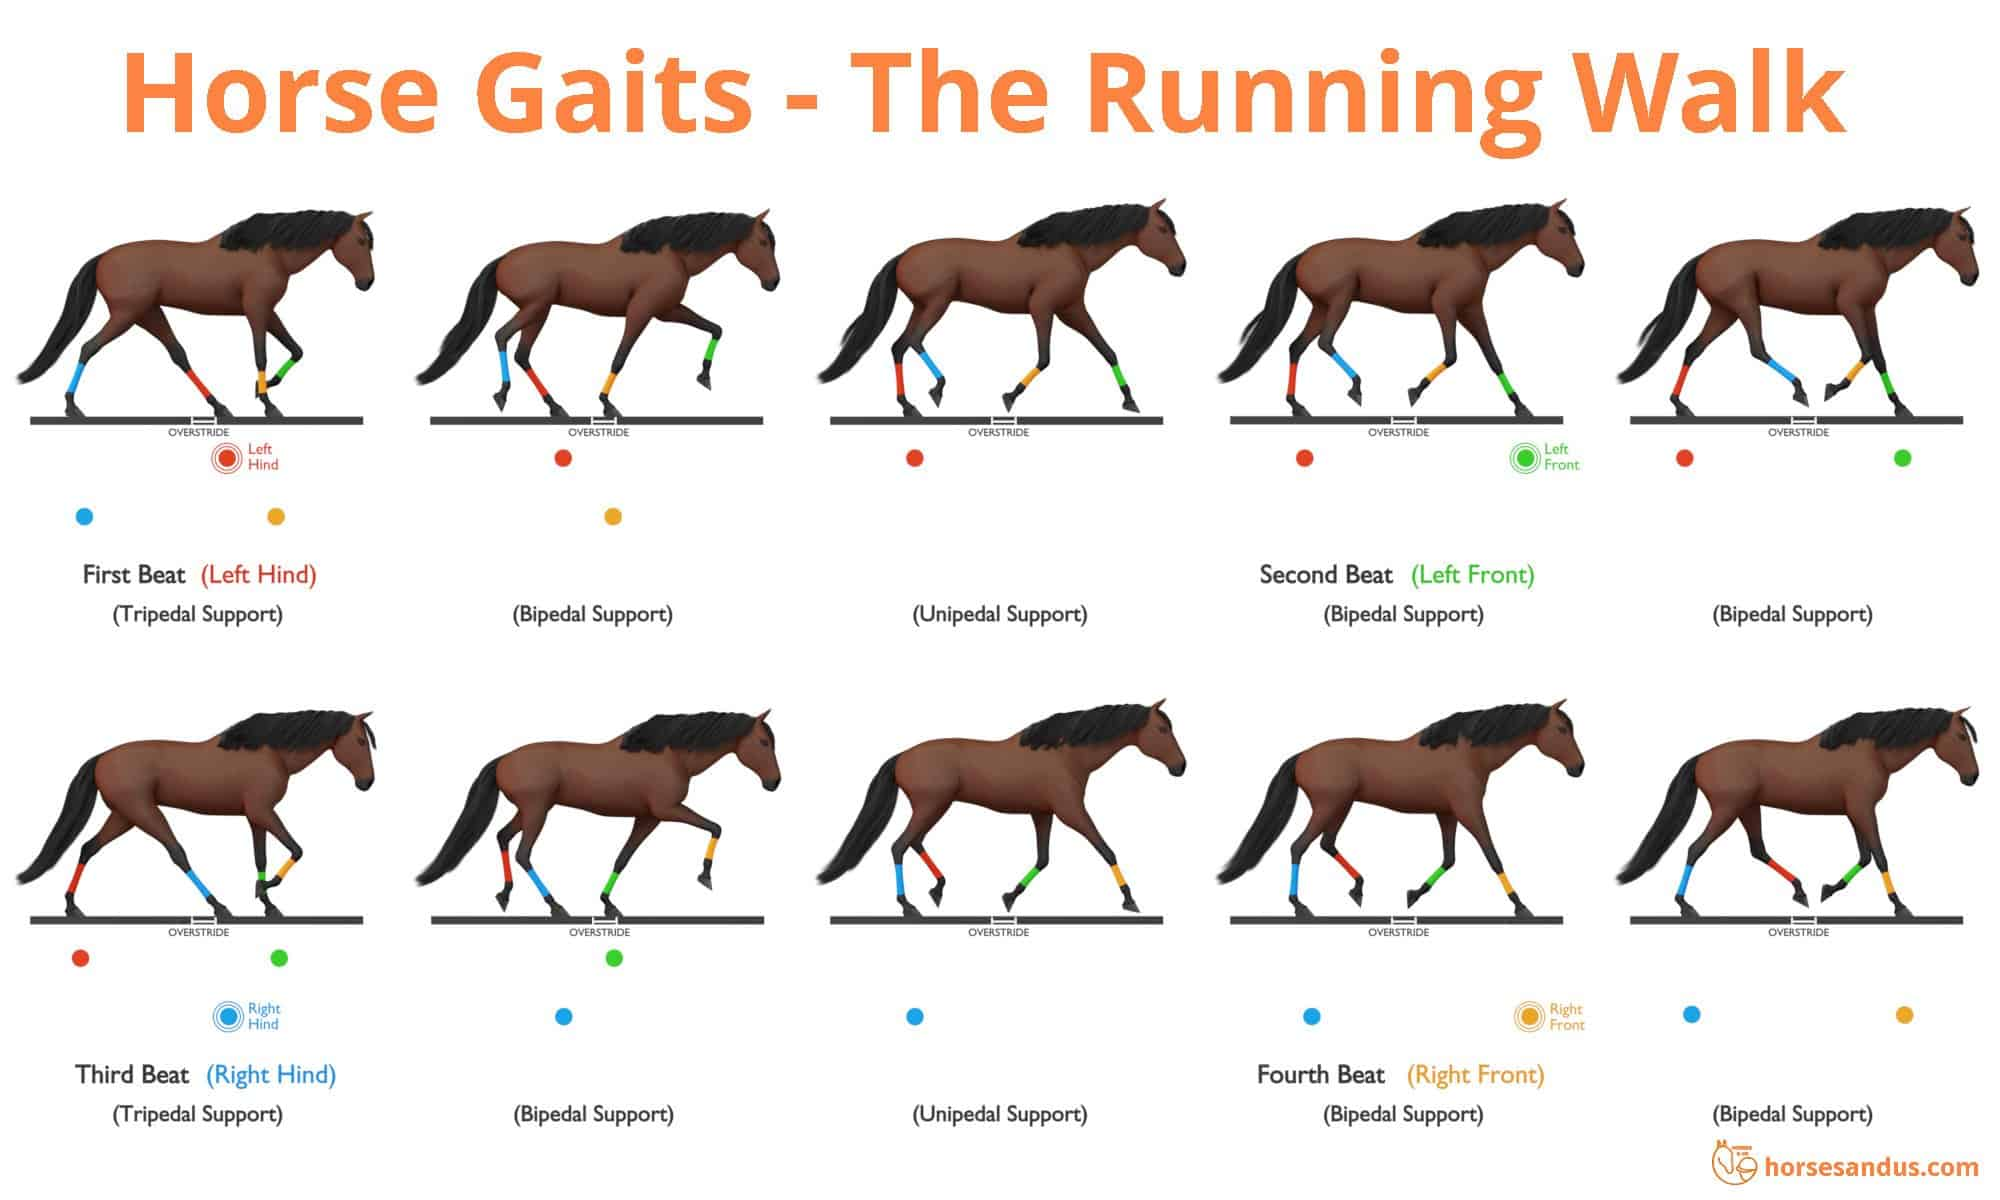 Sequence of footfalls for the Running Walk - Tennessee Walking Horse